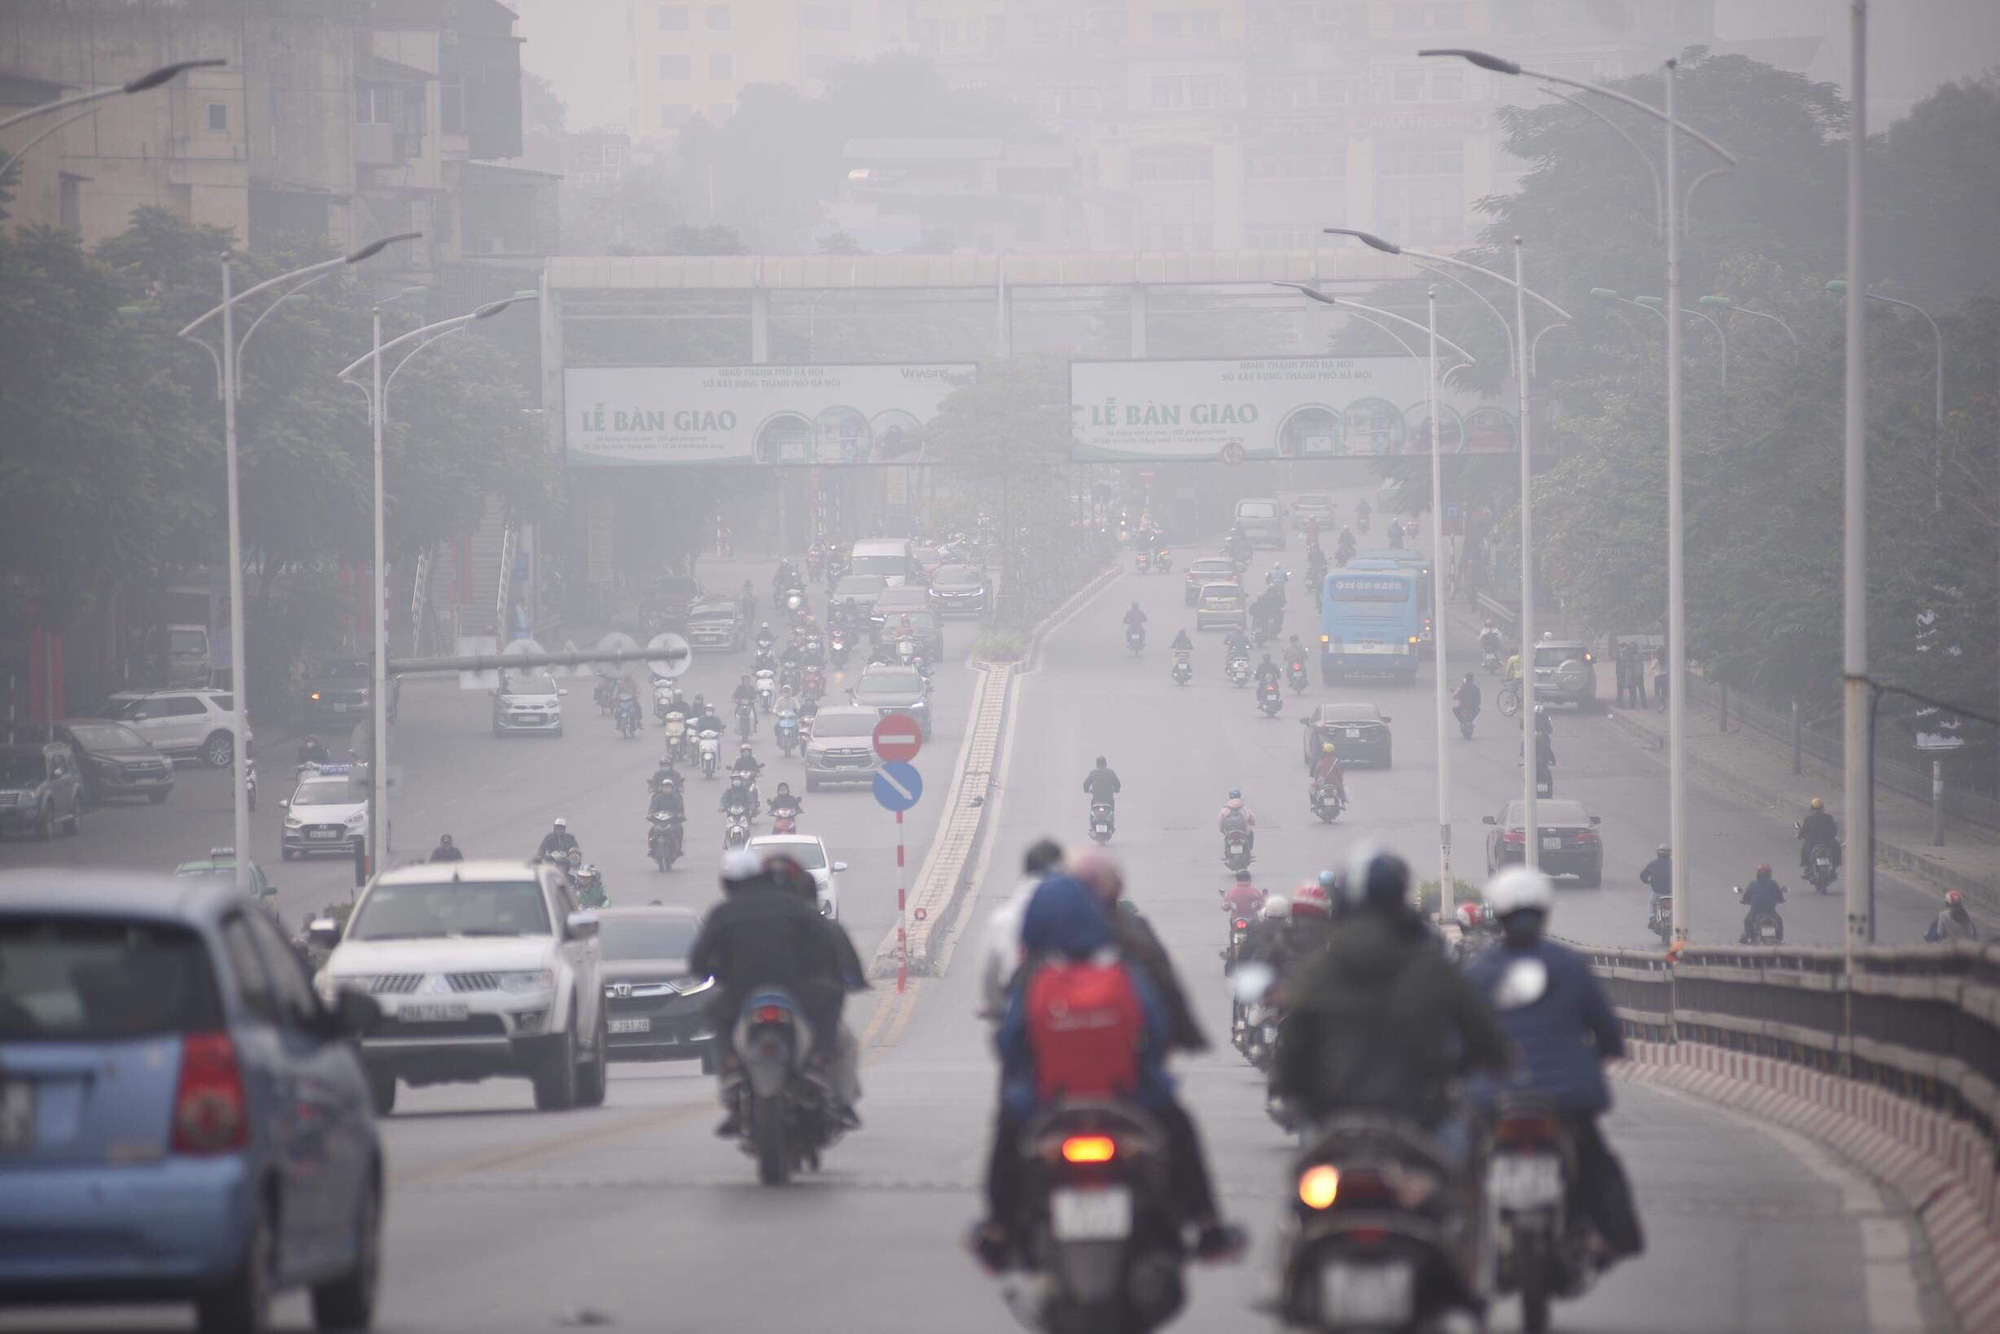 Environment ministry issues warnings regarding severe pollution in Hanoi